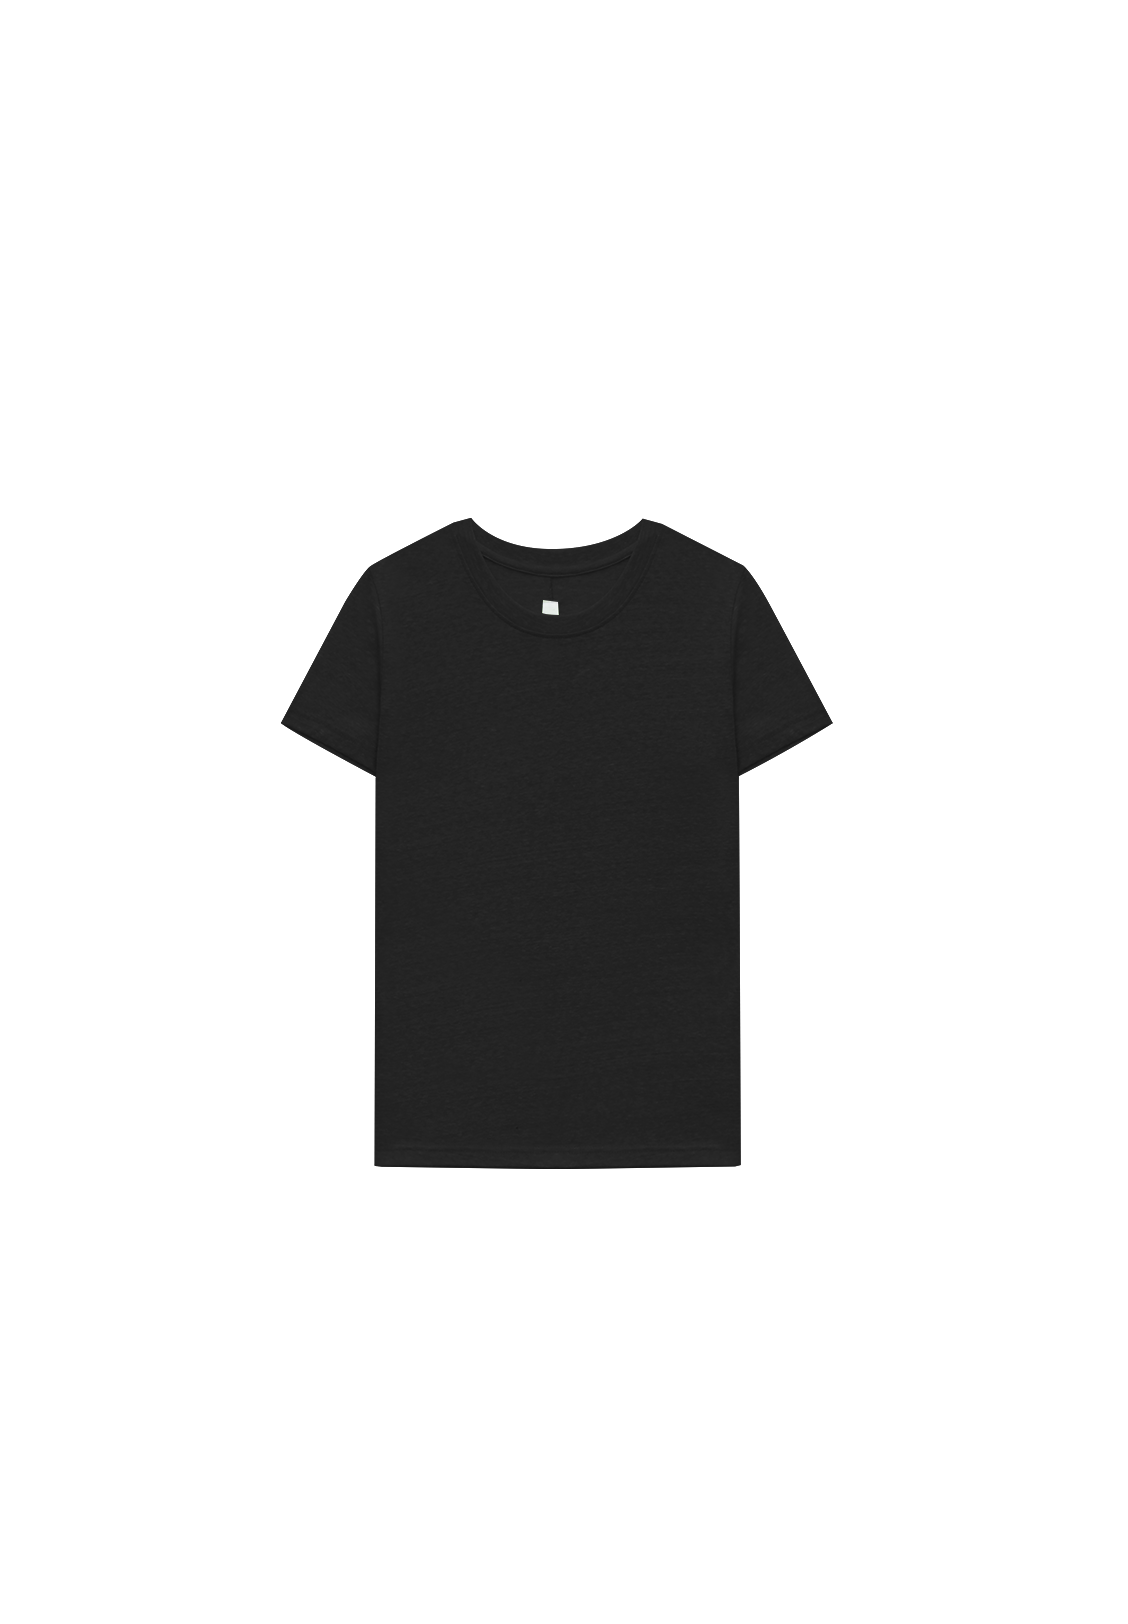 WOMEN'S CREW NECK TEE, BLACK